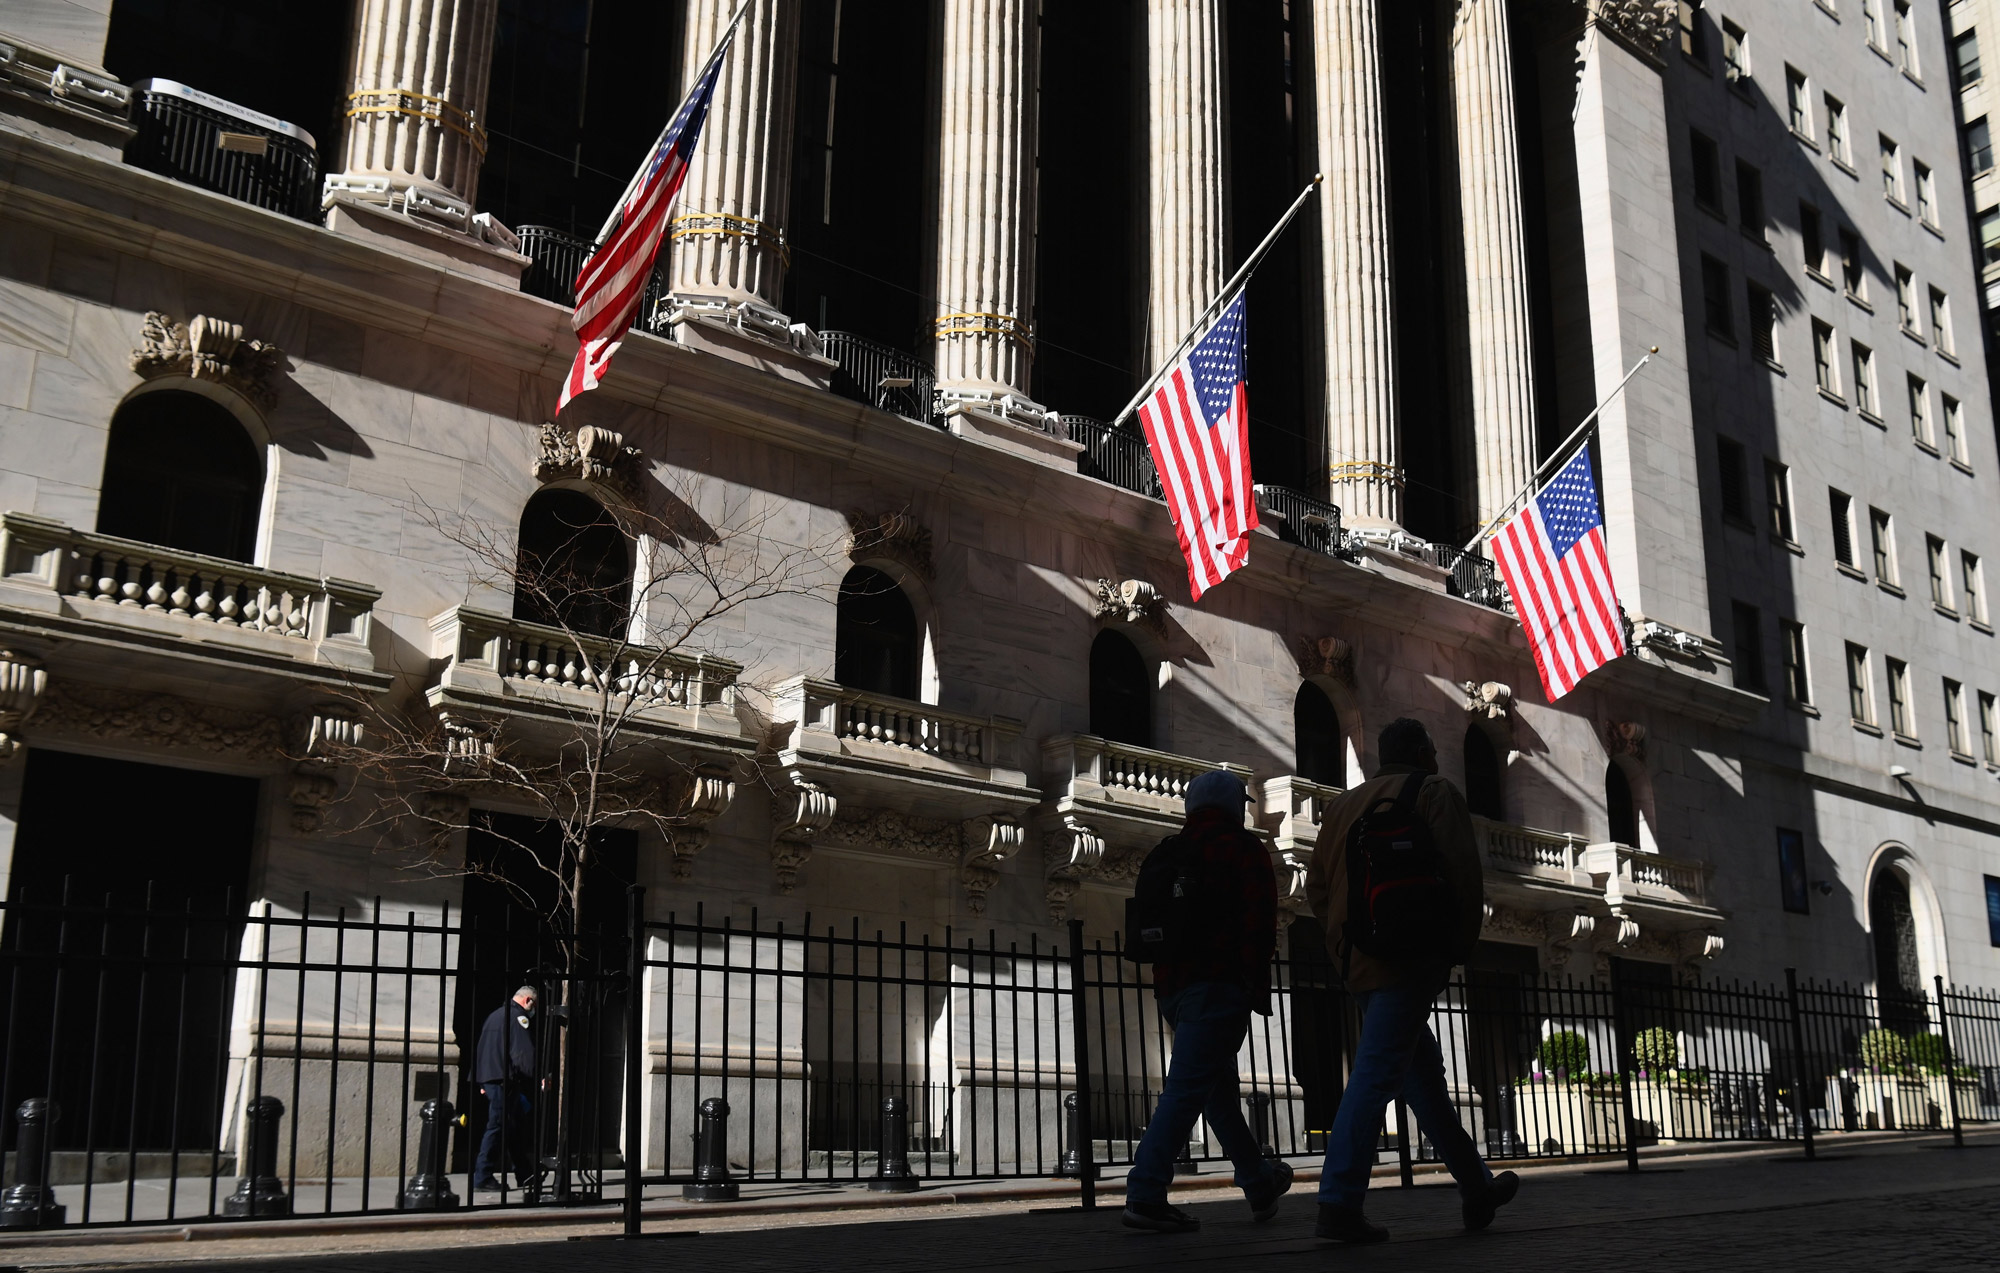 People walk by the New York Stock Exchange at Wall Street on January 12 in New York City.